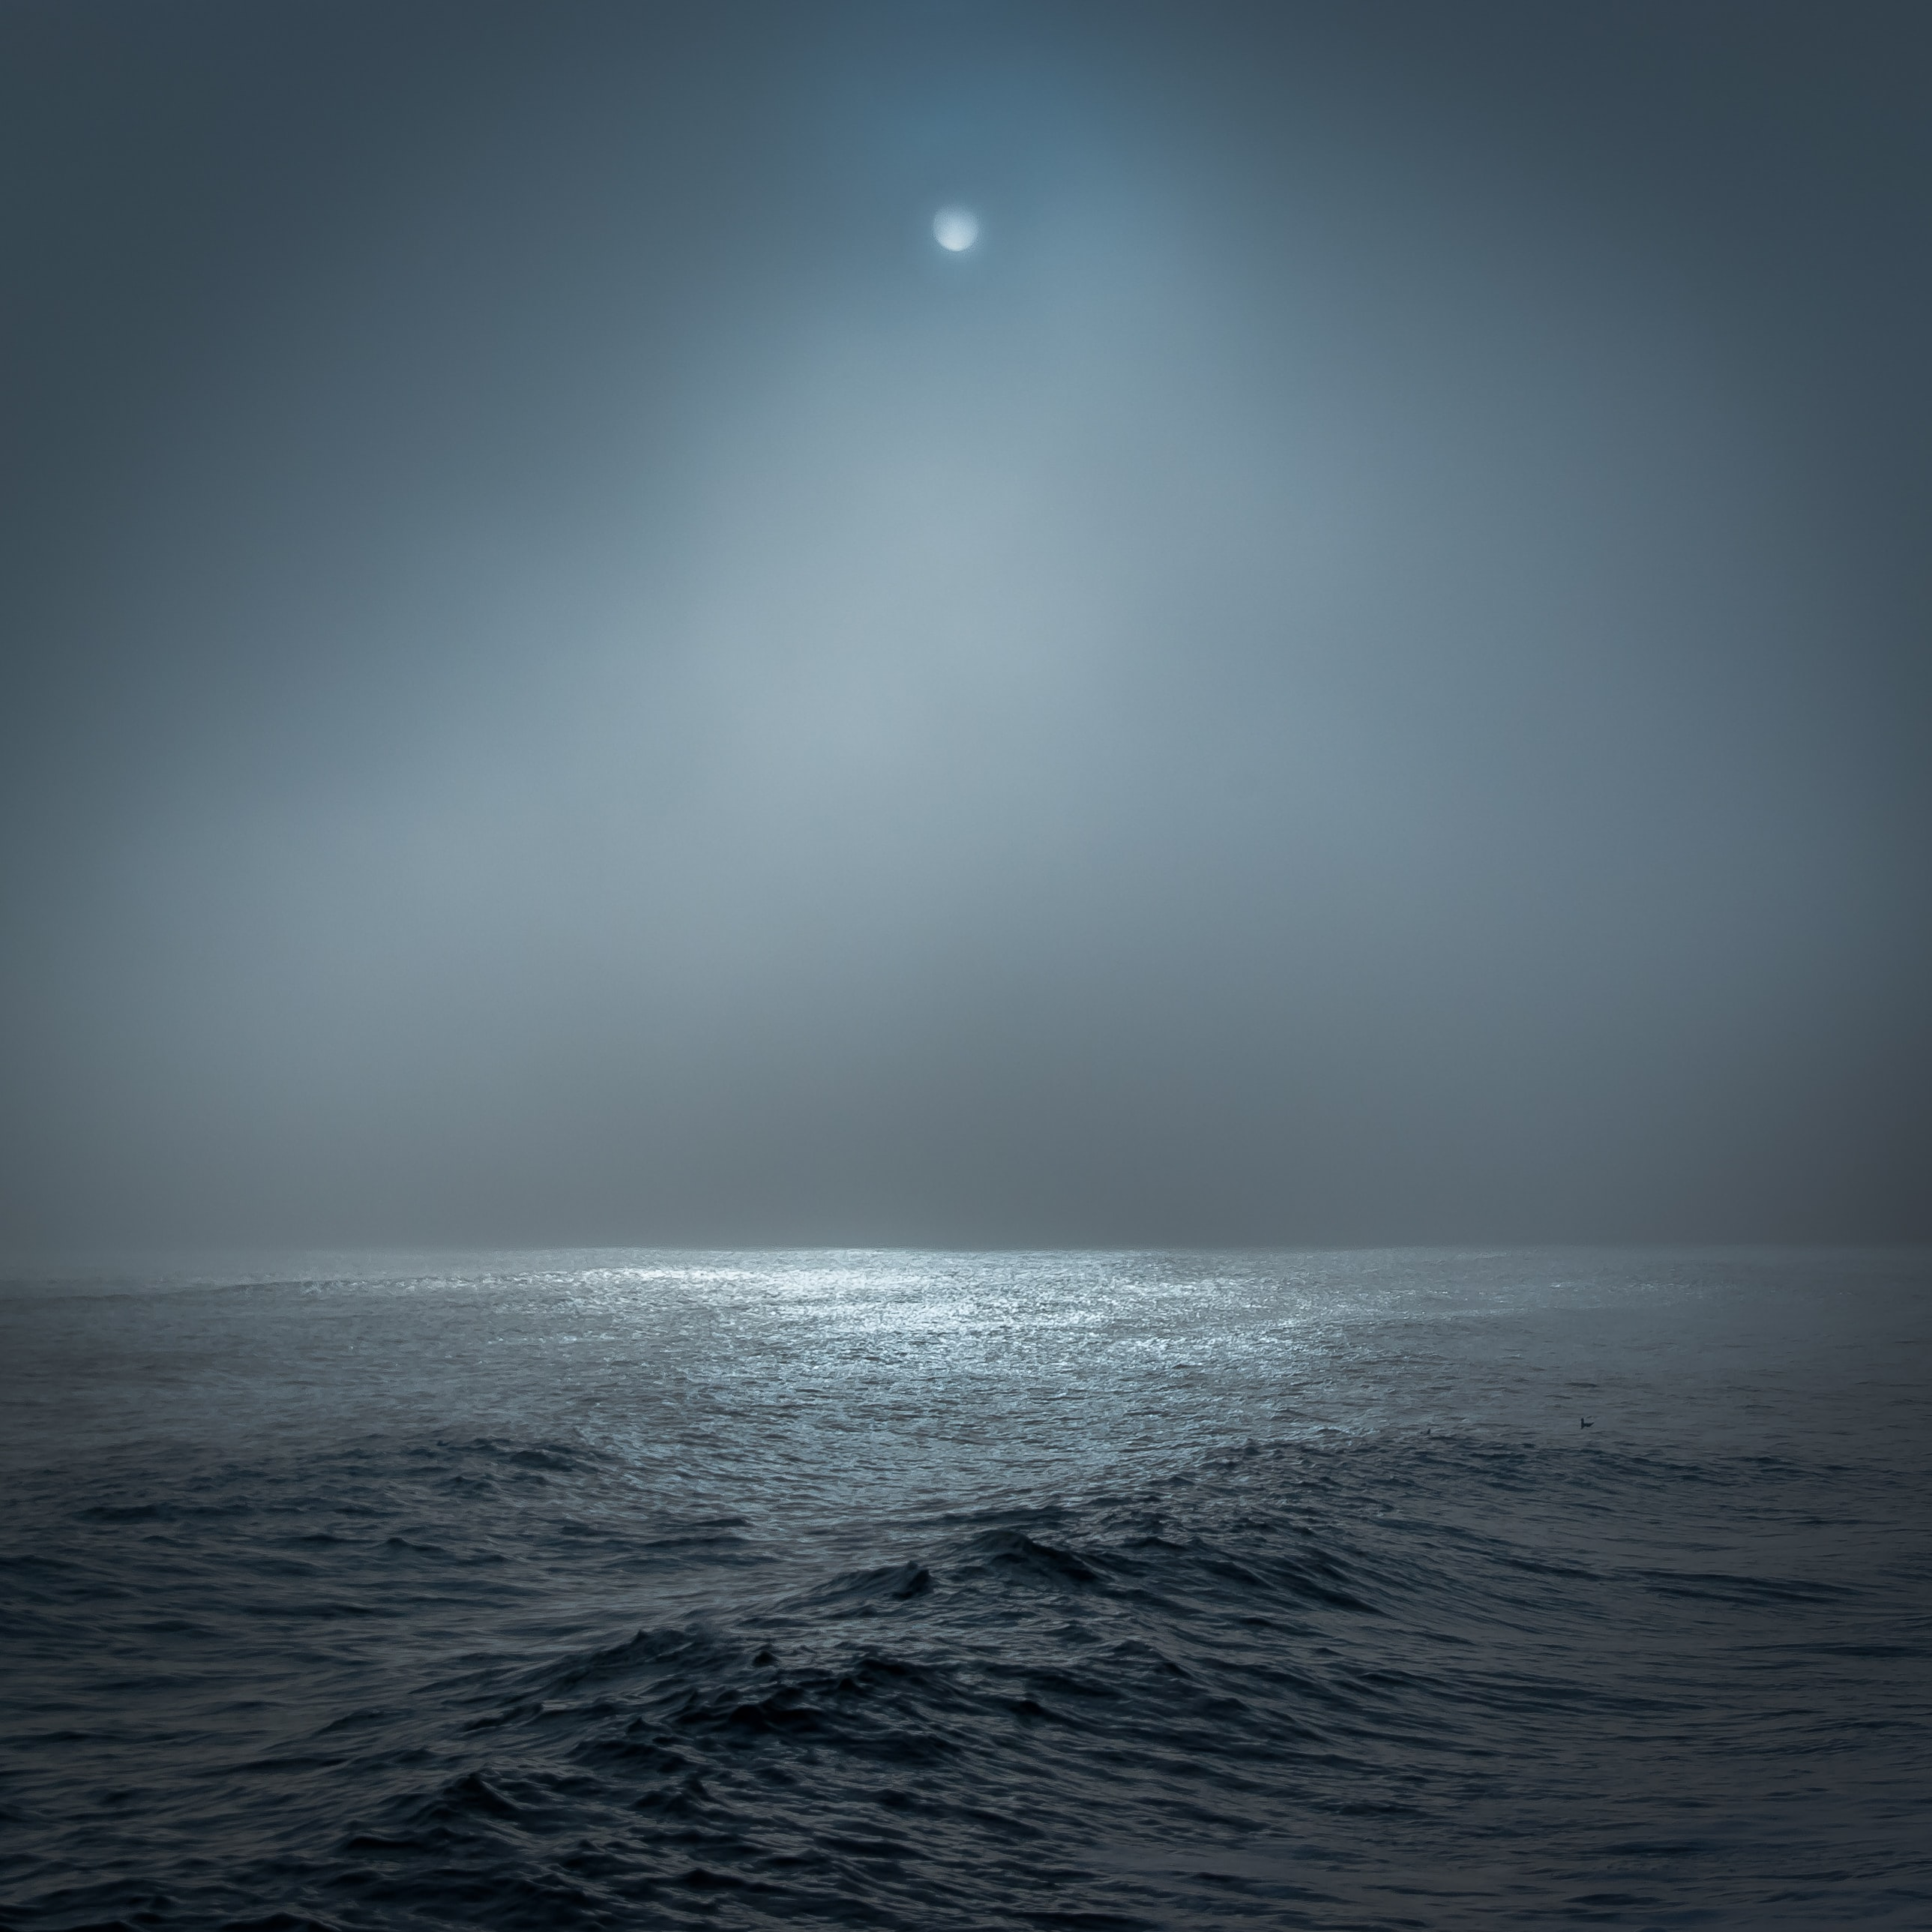 full moon lighted body of water